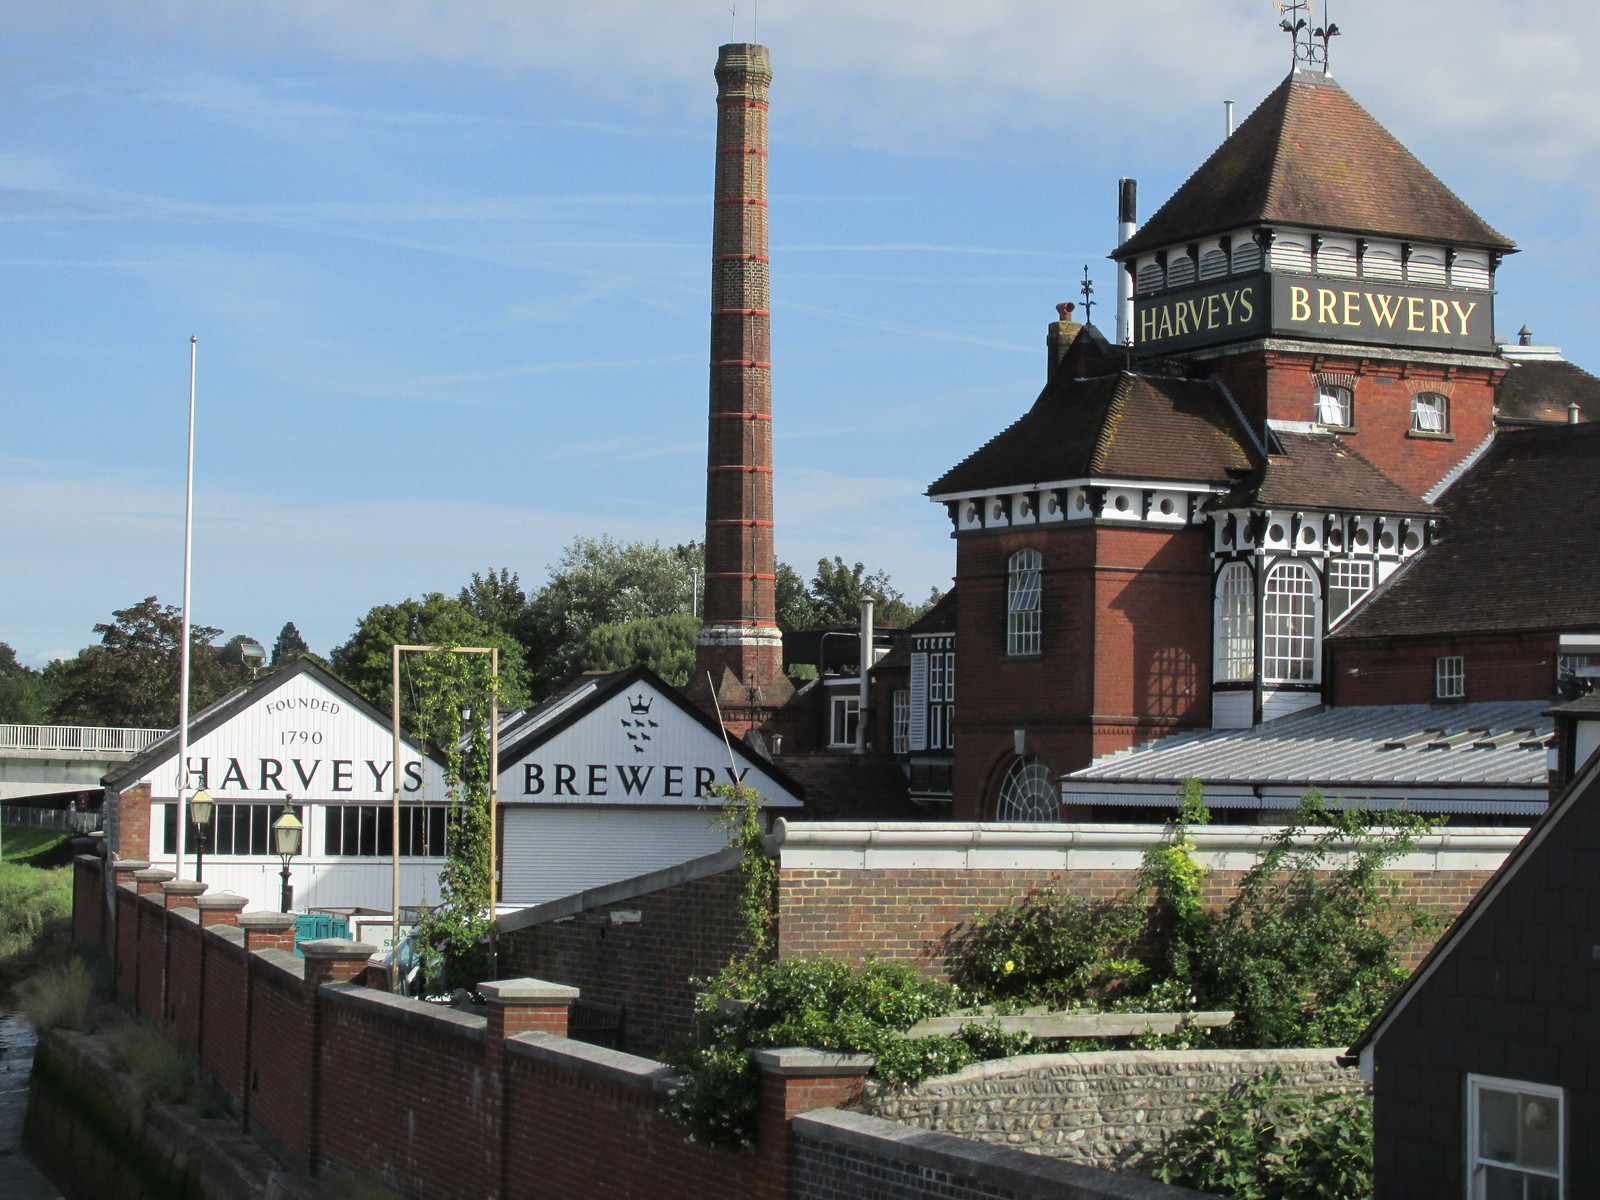 August 29, 2015: Lewes to Seaford Harveys Brewery